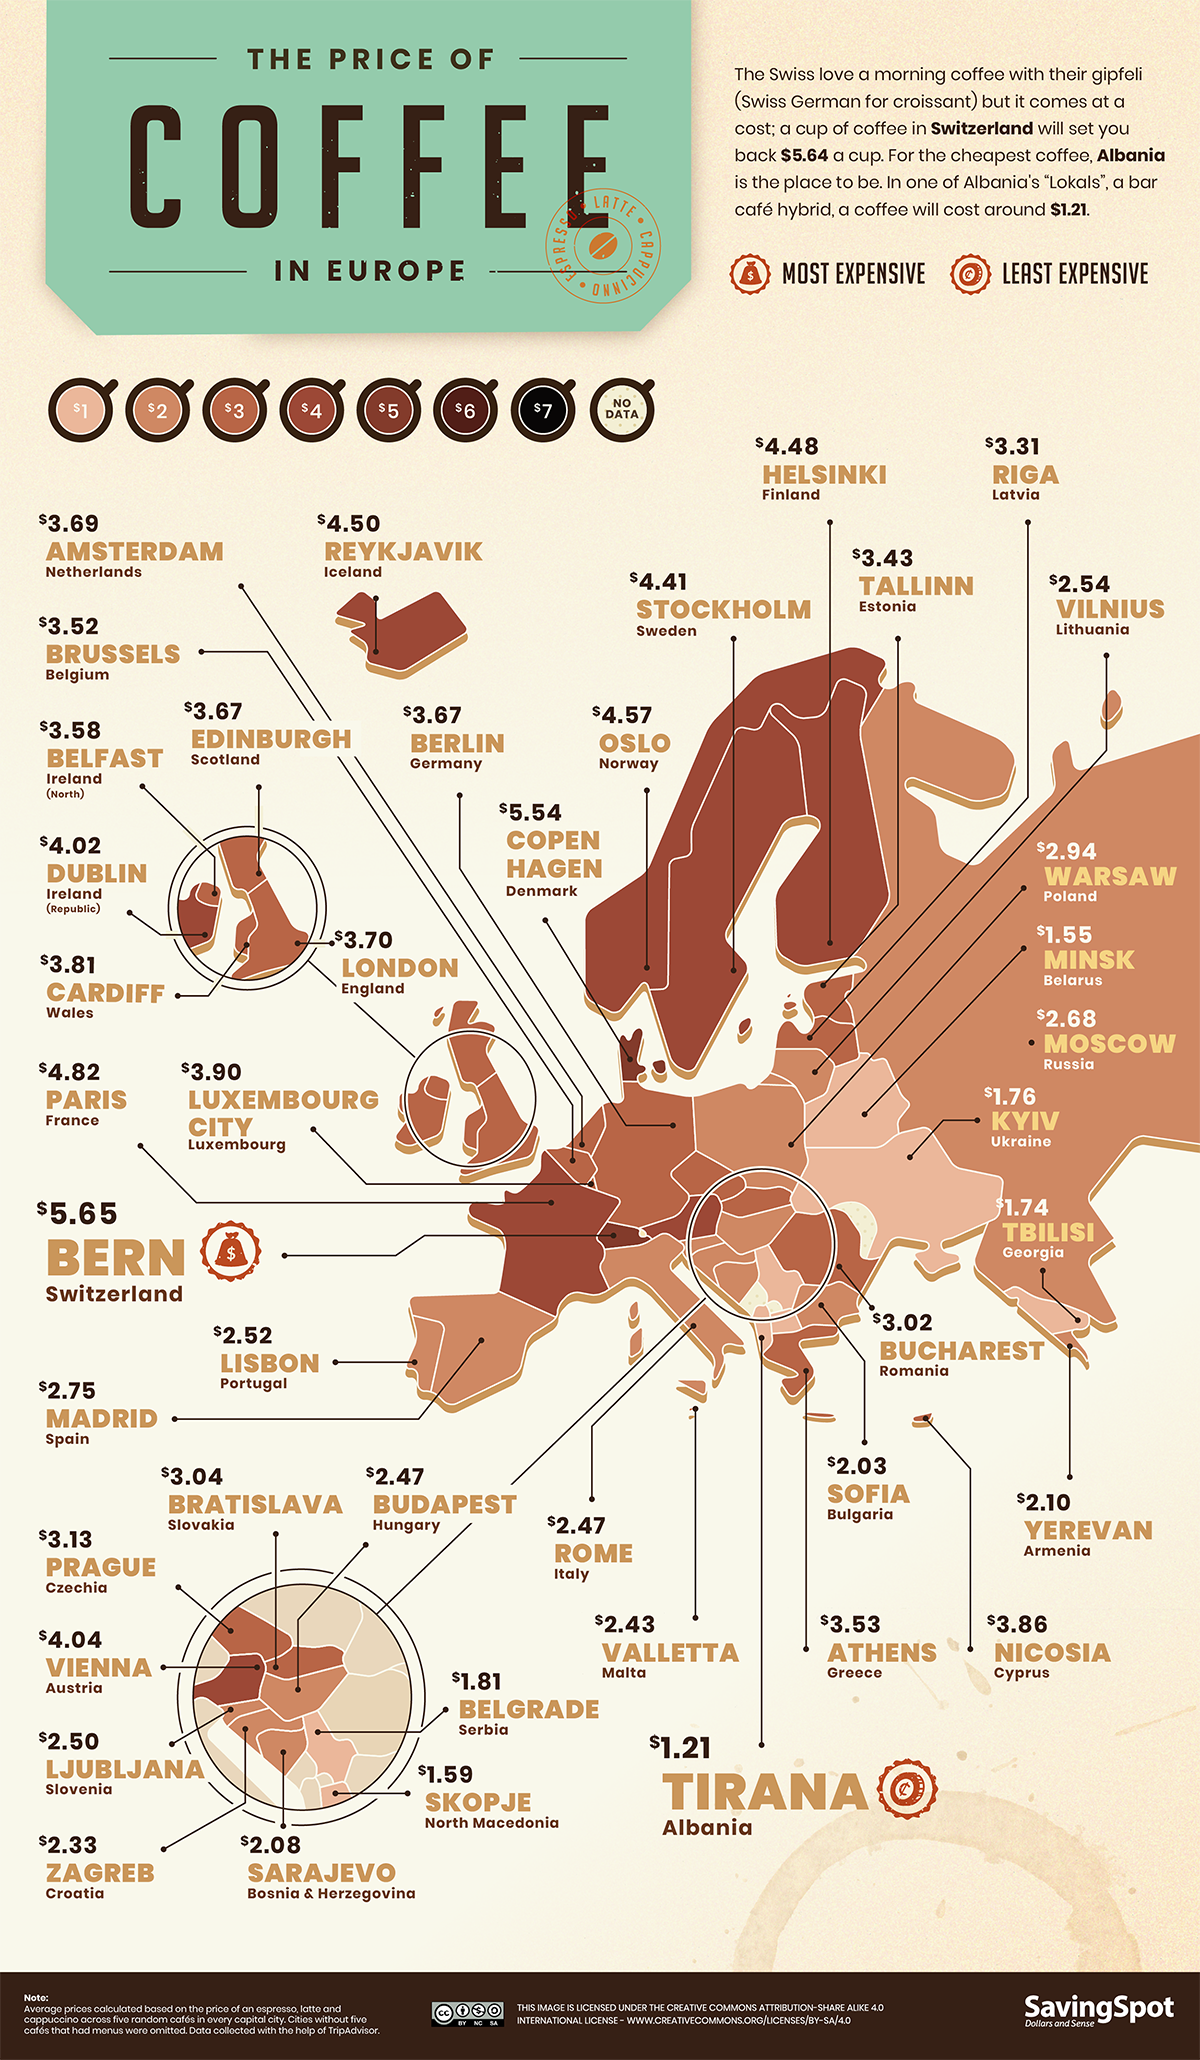 the price of coffee in europe